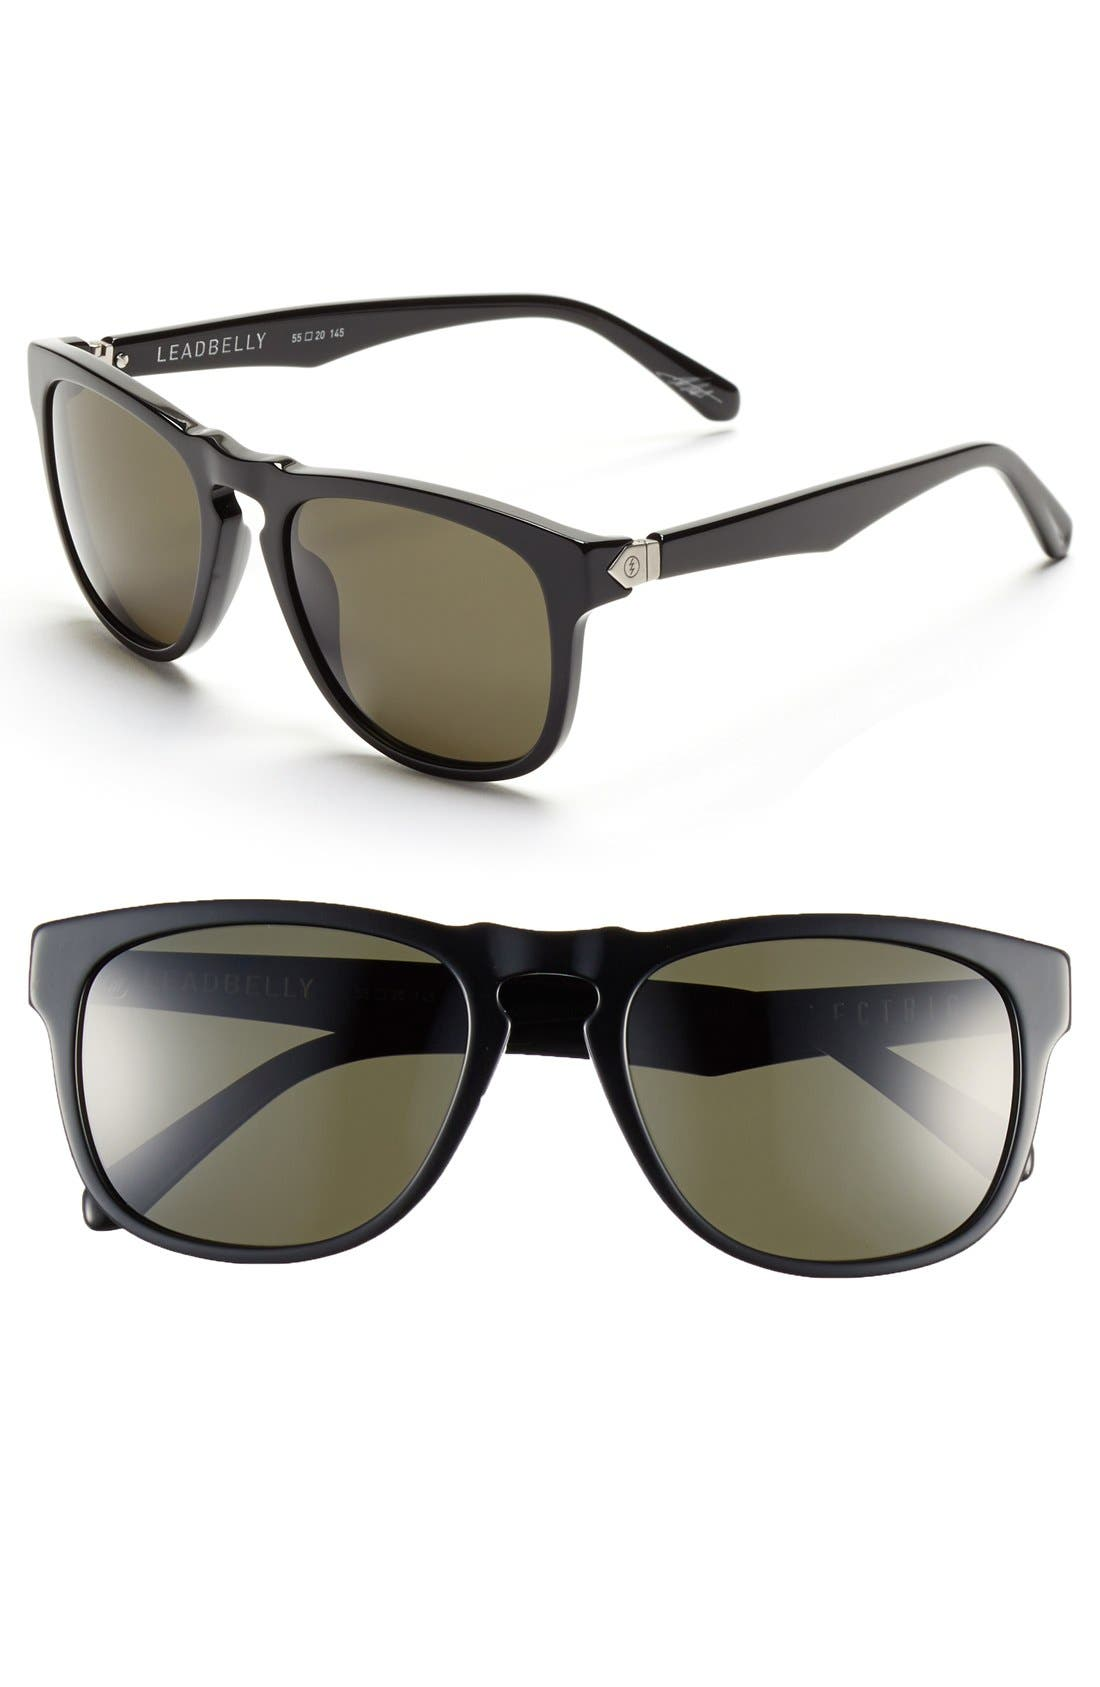 Main Image - ELECTRIC 'Leadbelly' 55mm Sunglasses